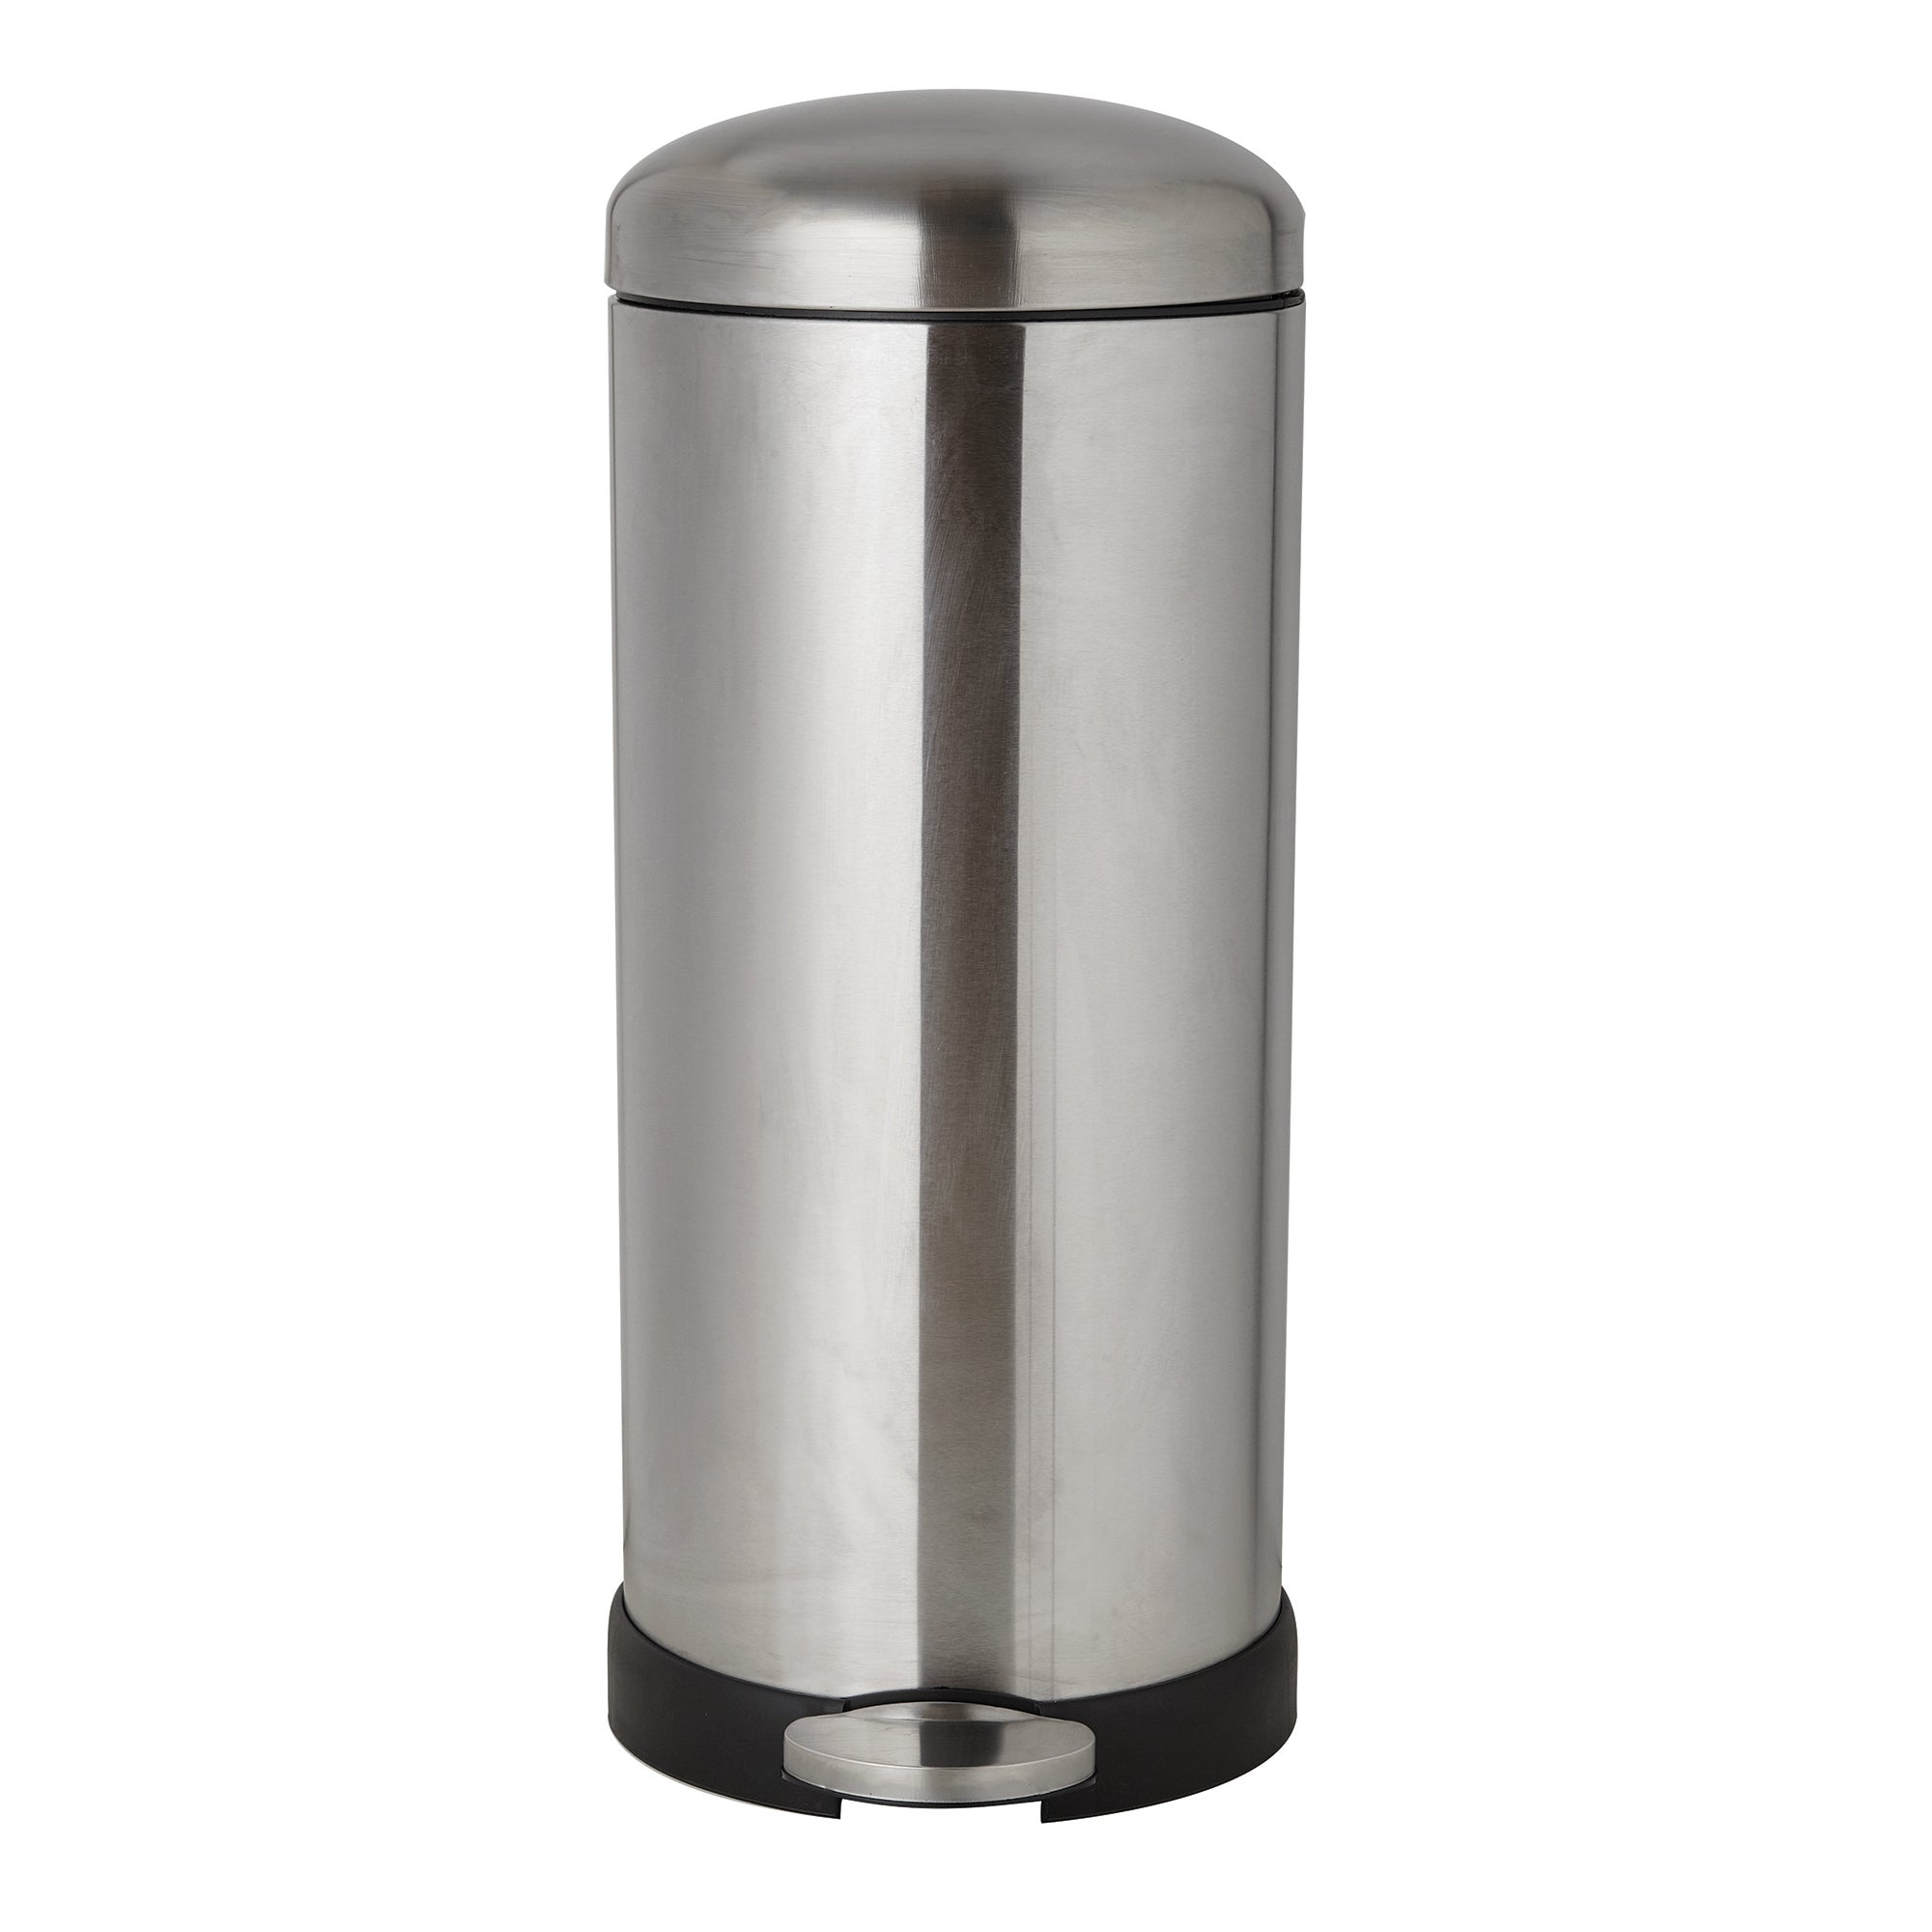 Photo of Dunelm 30 litre stainless steel pedal bin brushed steel